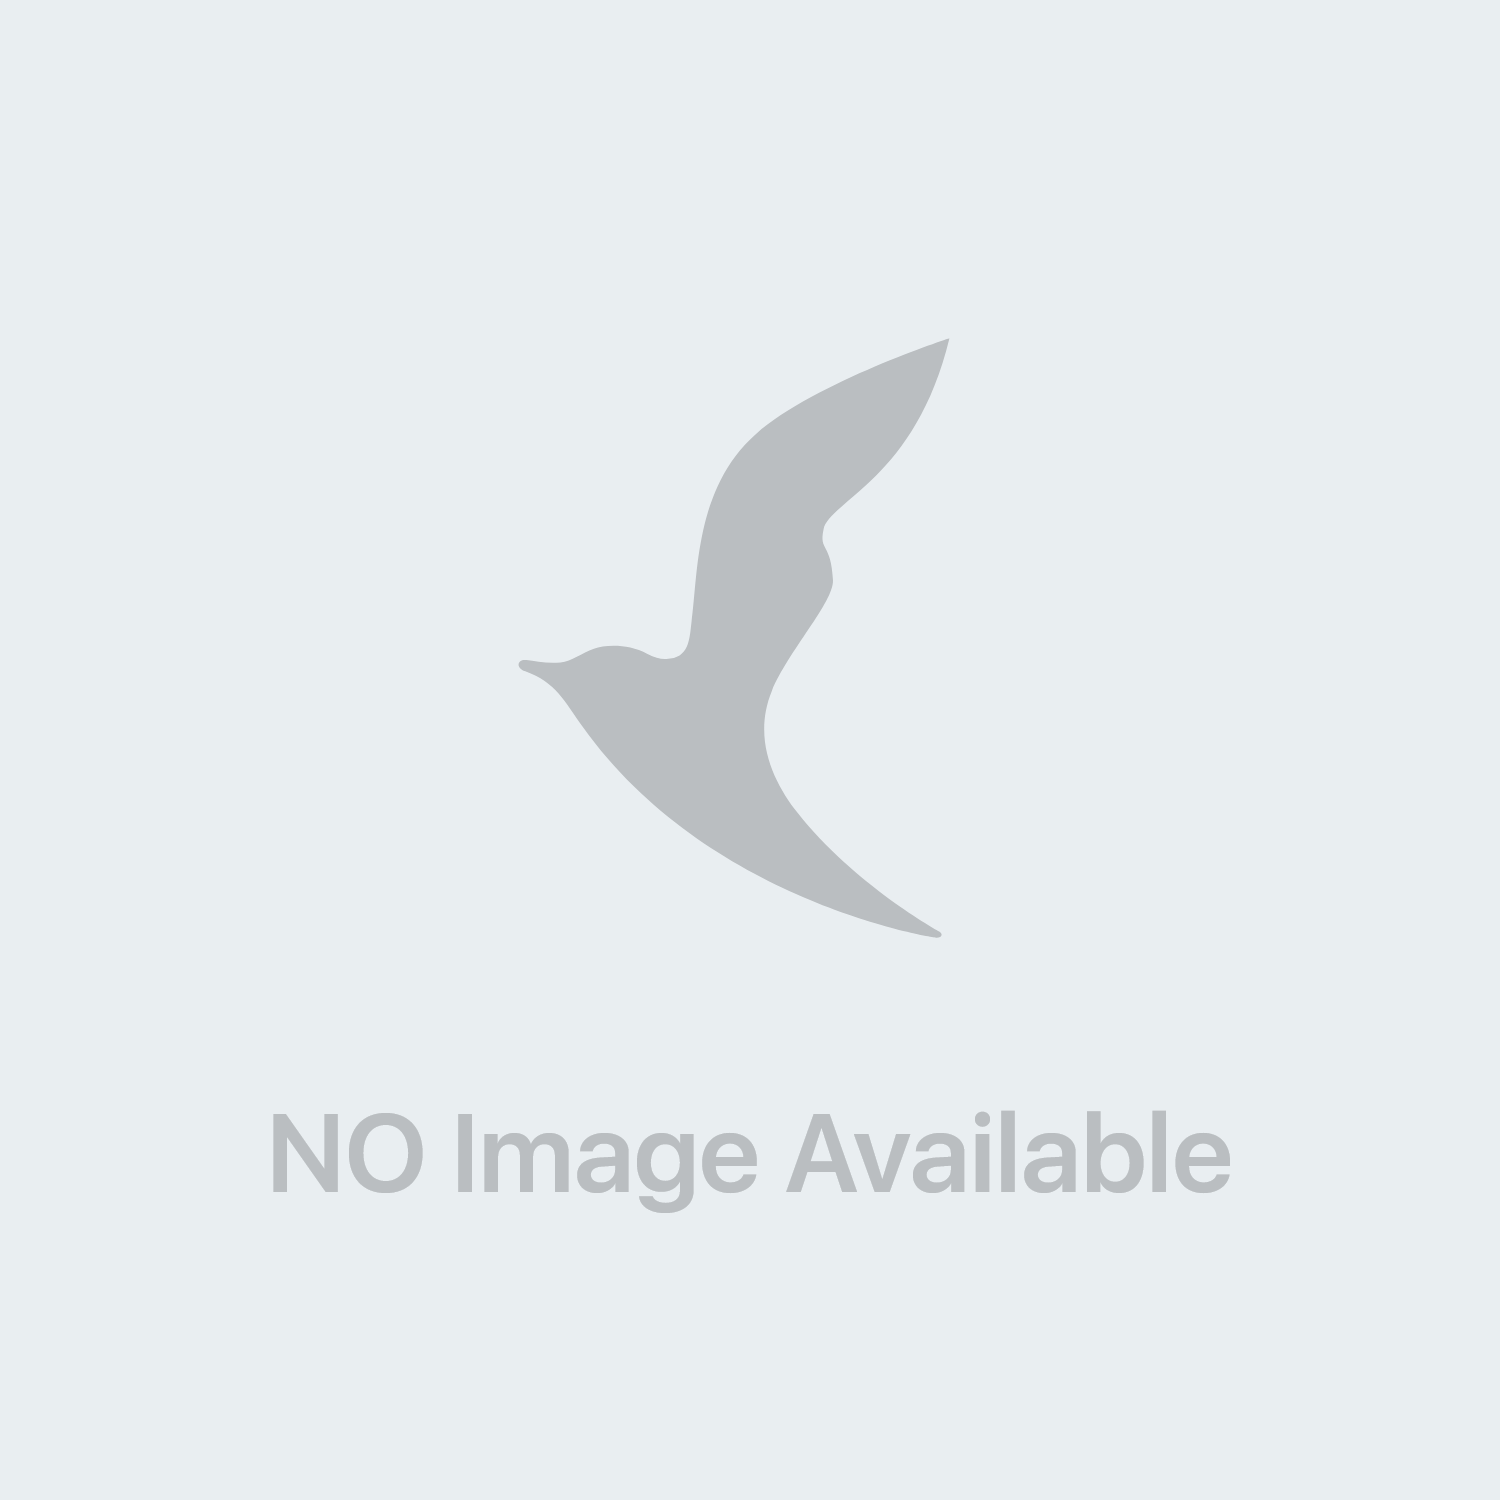 Efferalgan Lattanti 80 mg Paracetamolo 10 Supposte